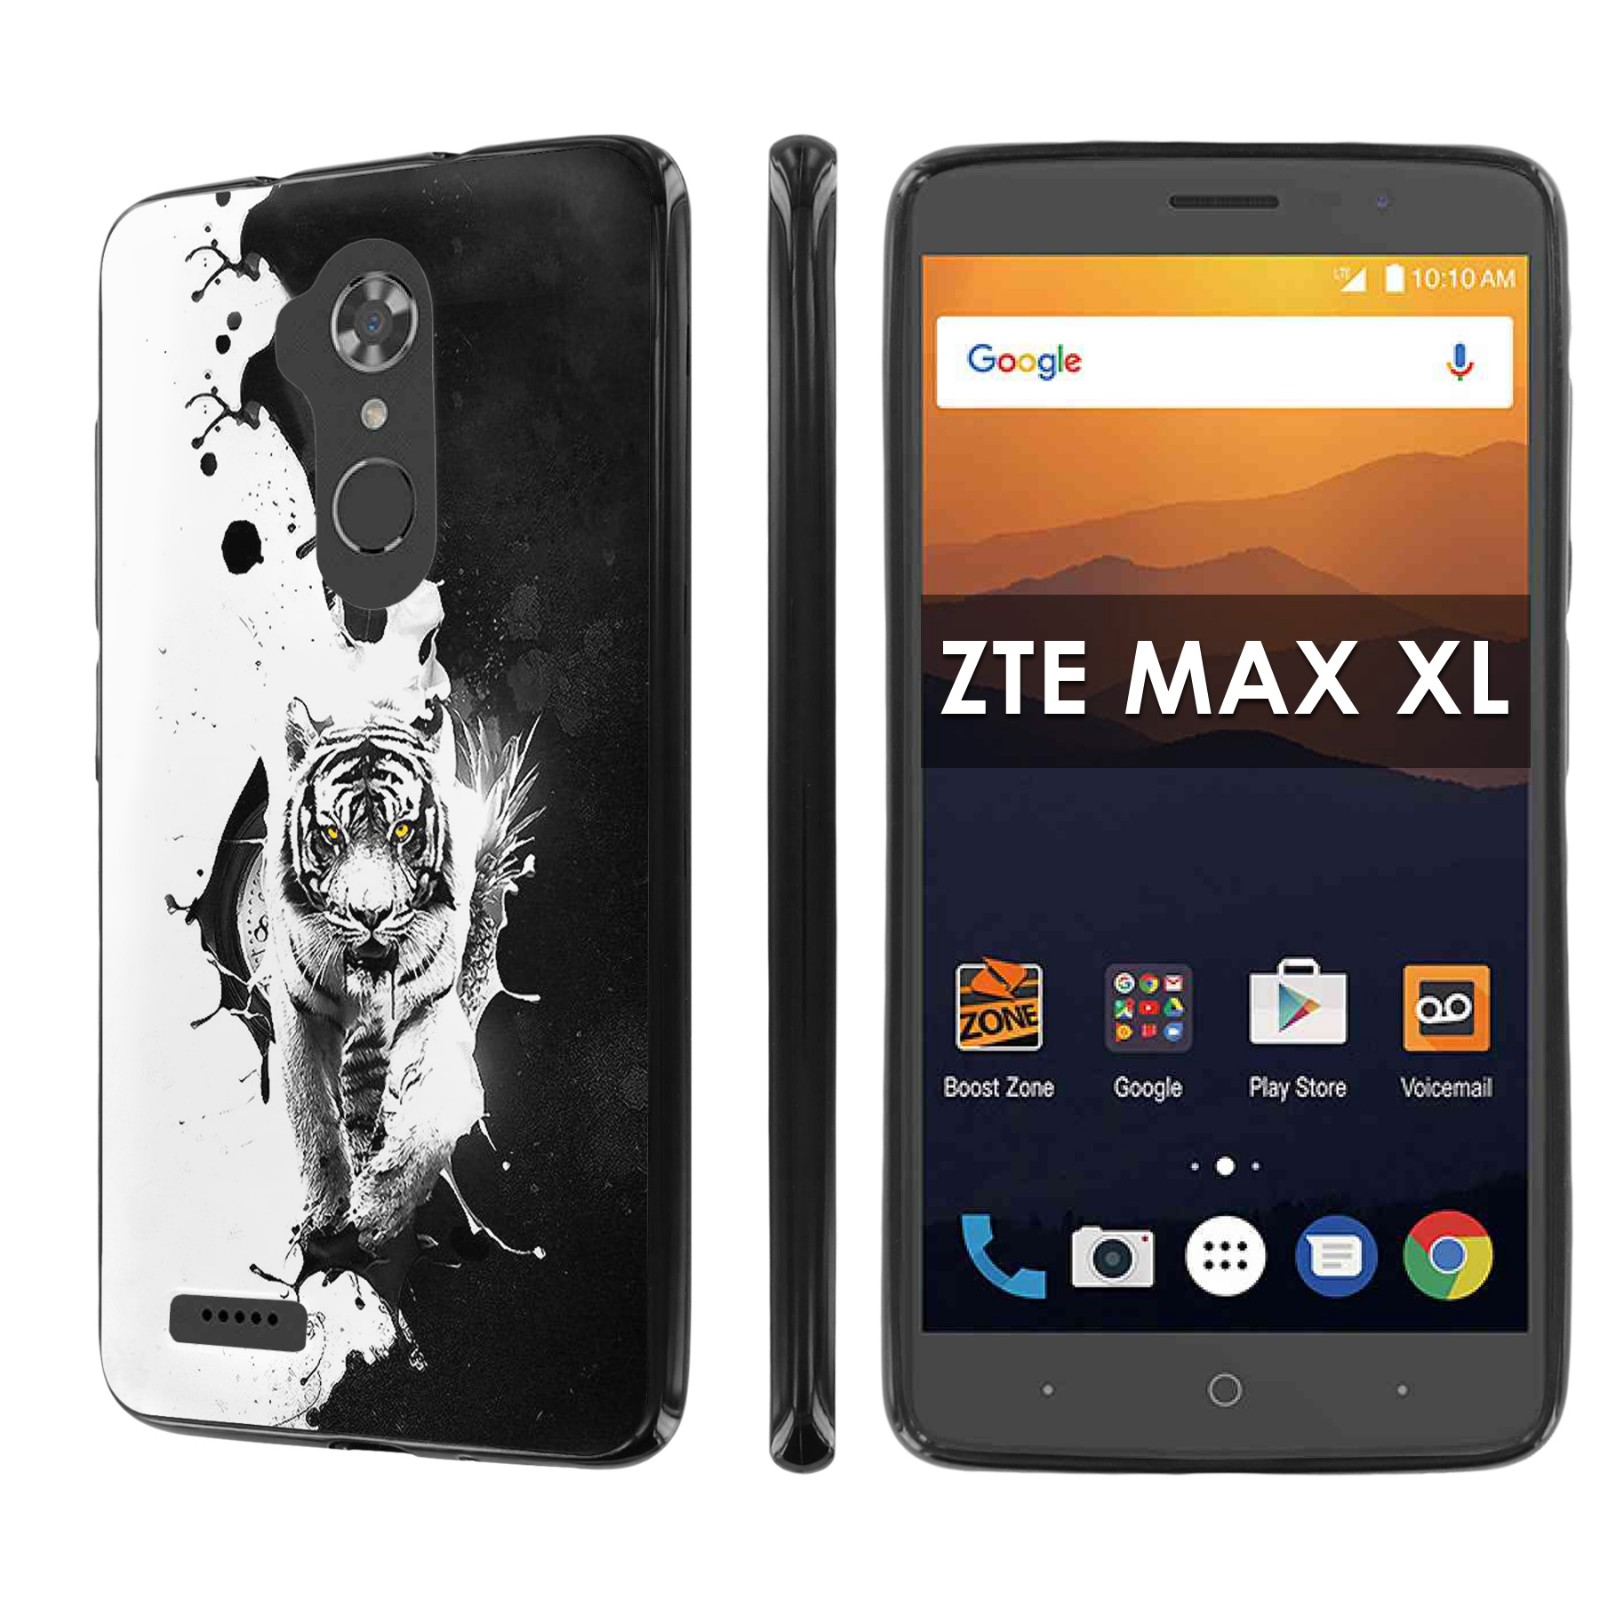 features more zte max xl screen replacement Firmware